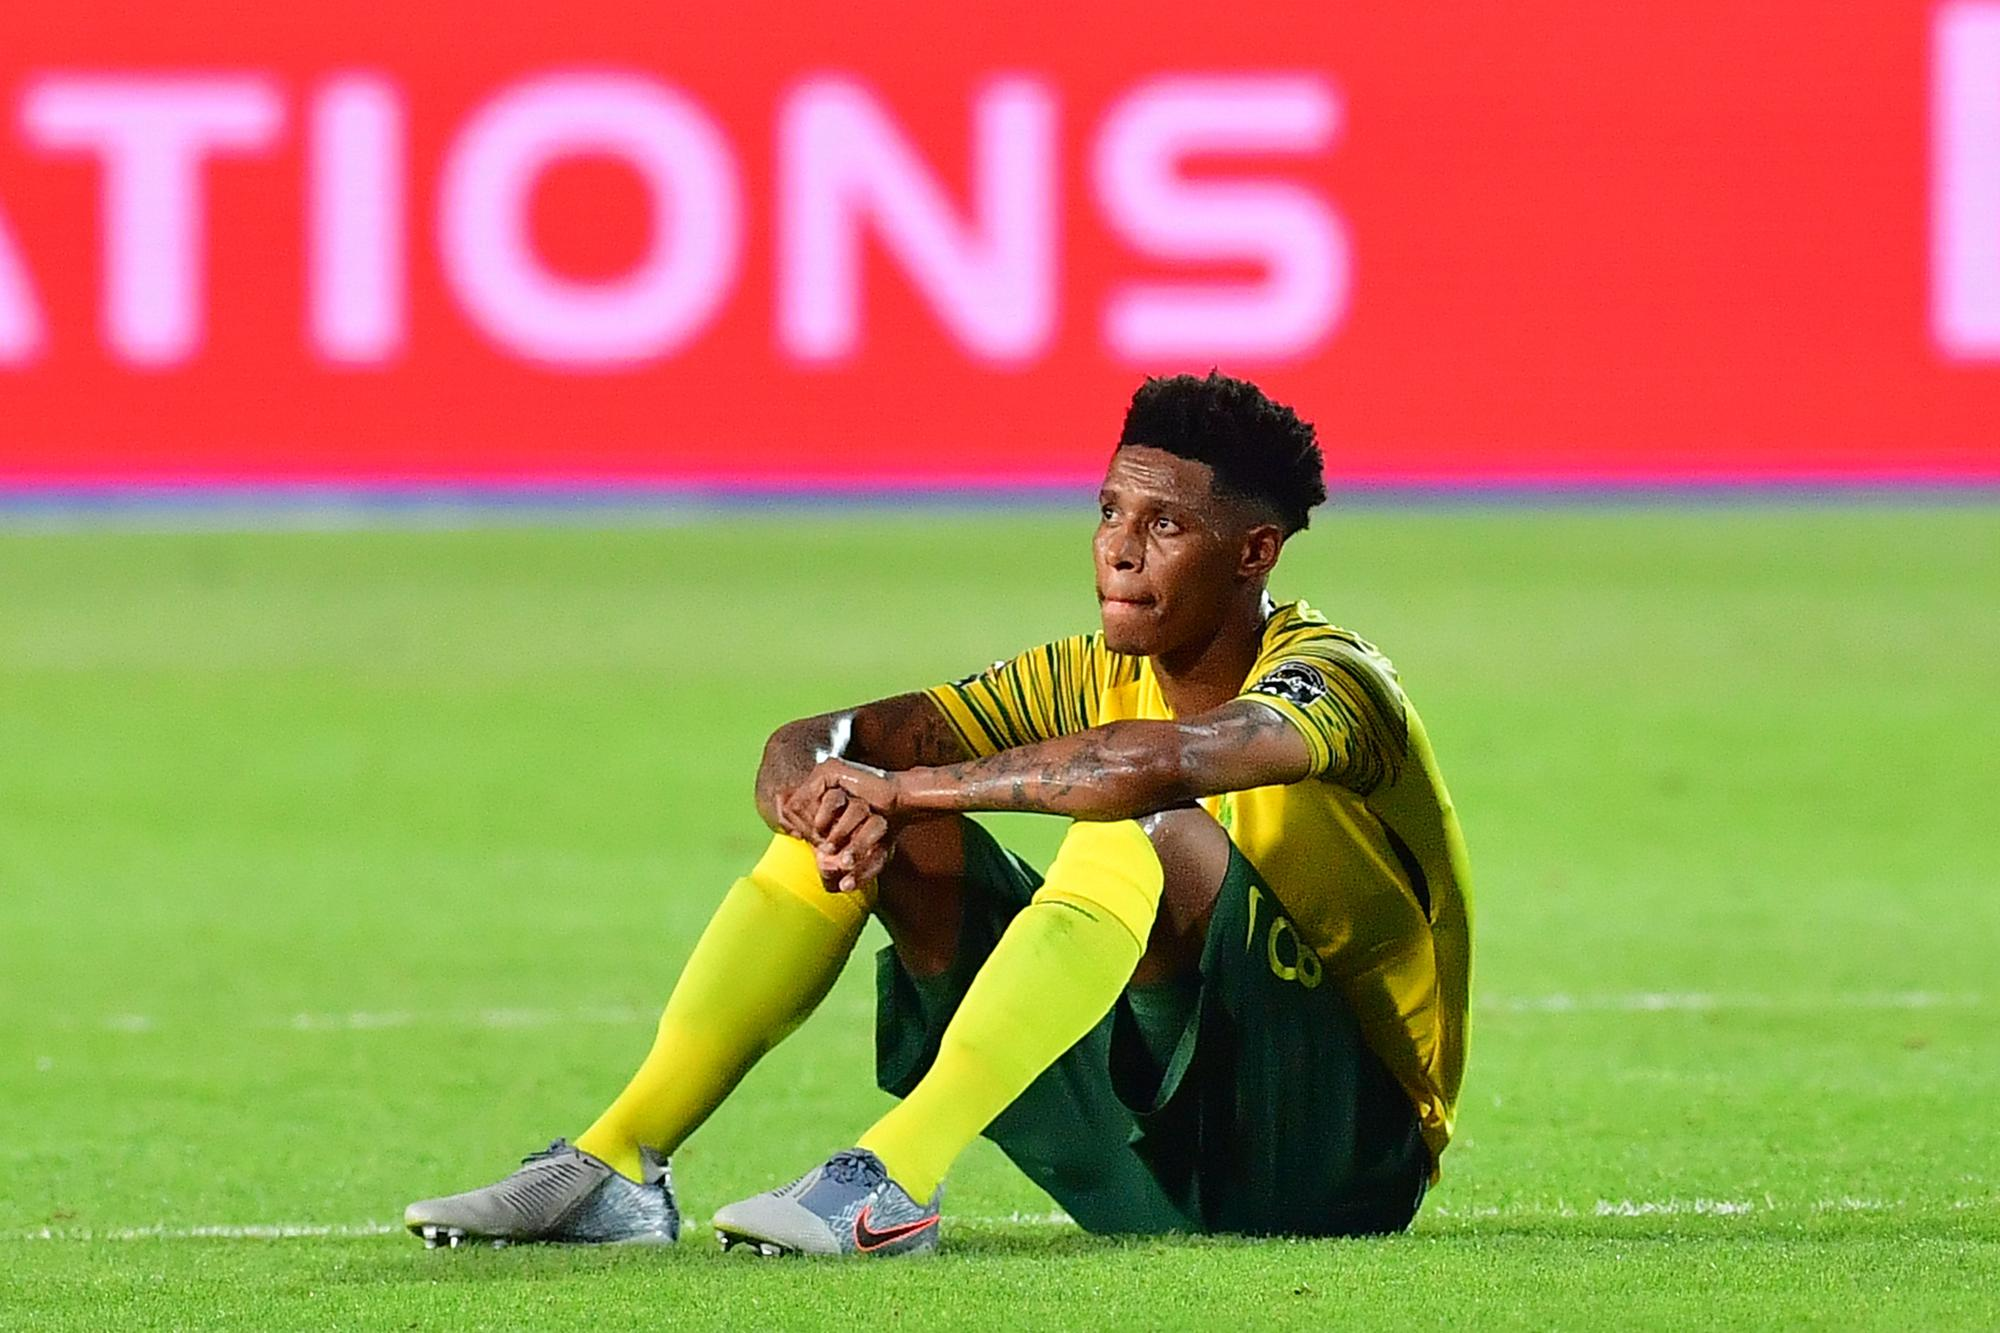 Rangers' move for Bongani Zungu in doubt as talks over personal terms drag on - The Scotsman